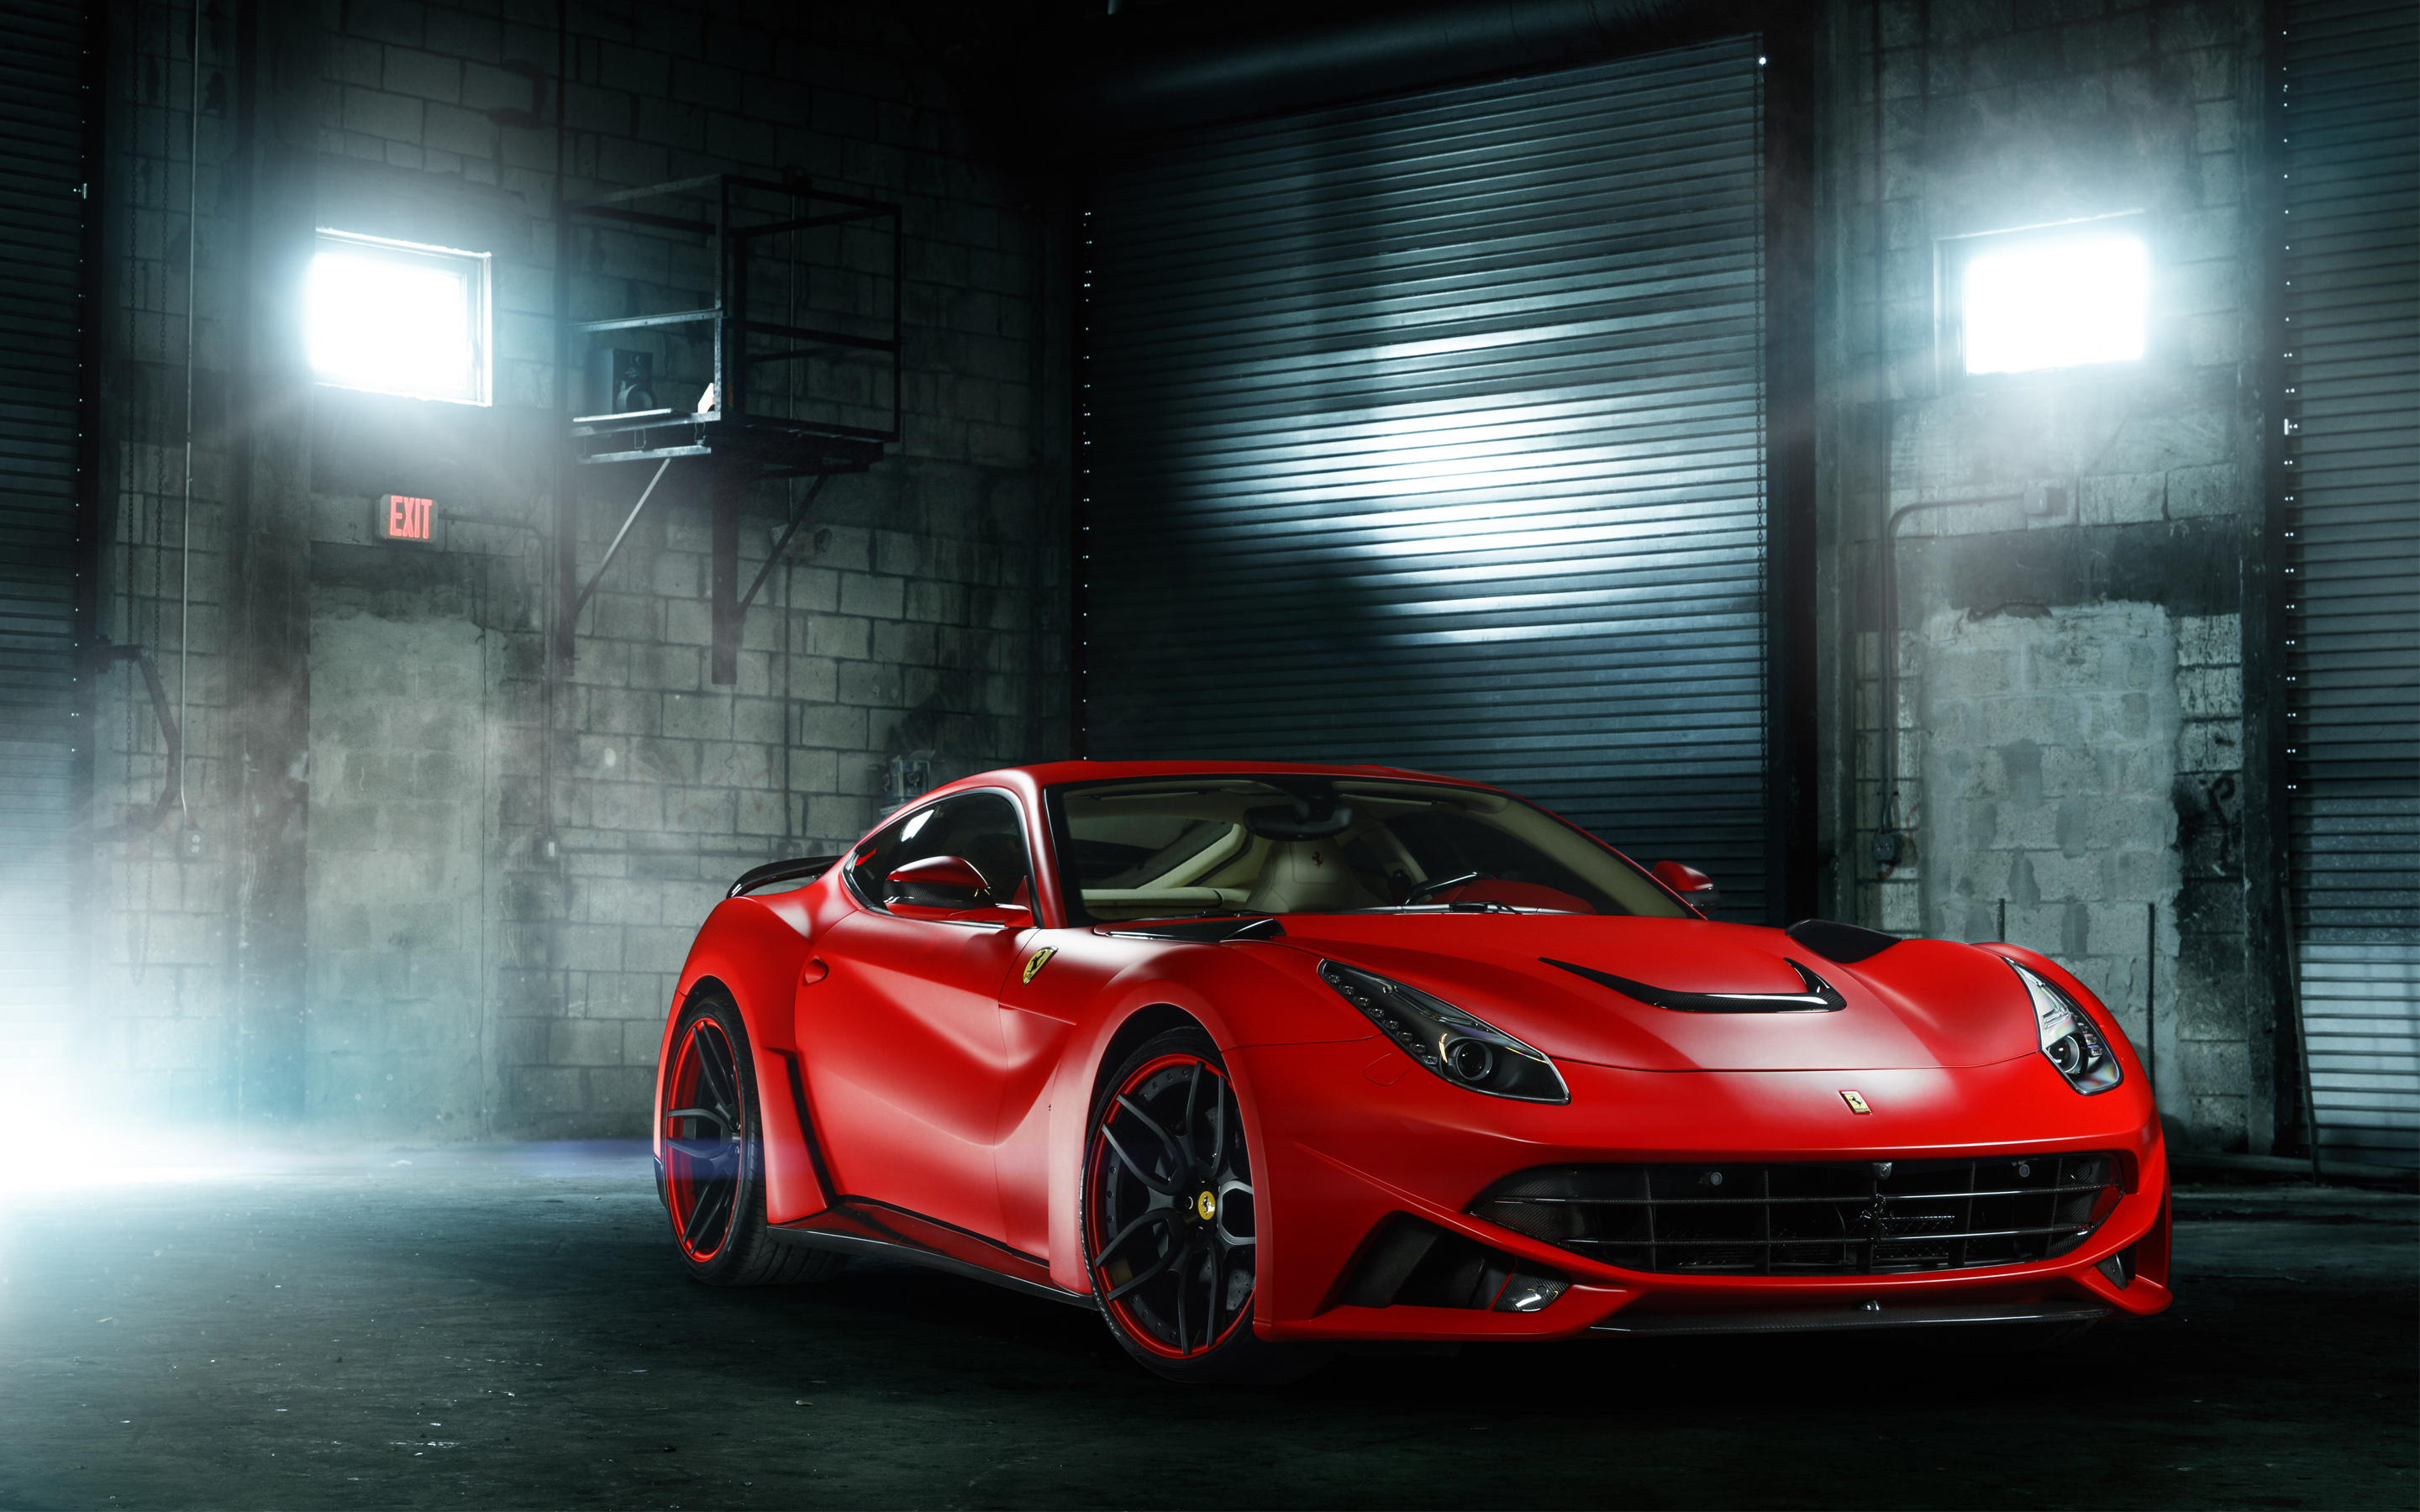 Mc Customs Wide Body Ferrari F12berlinetta Ultra Hd Walls